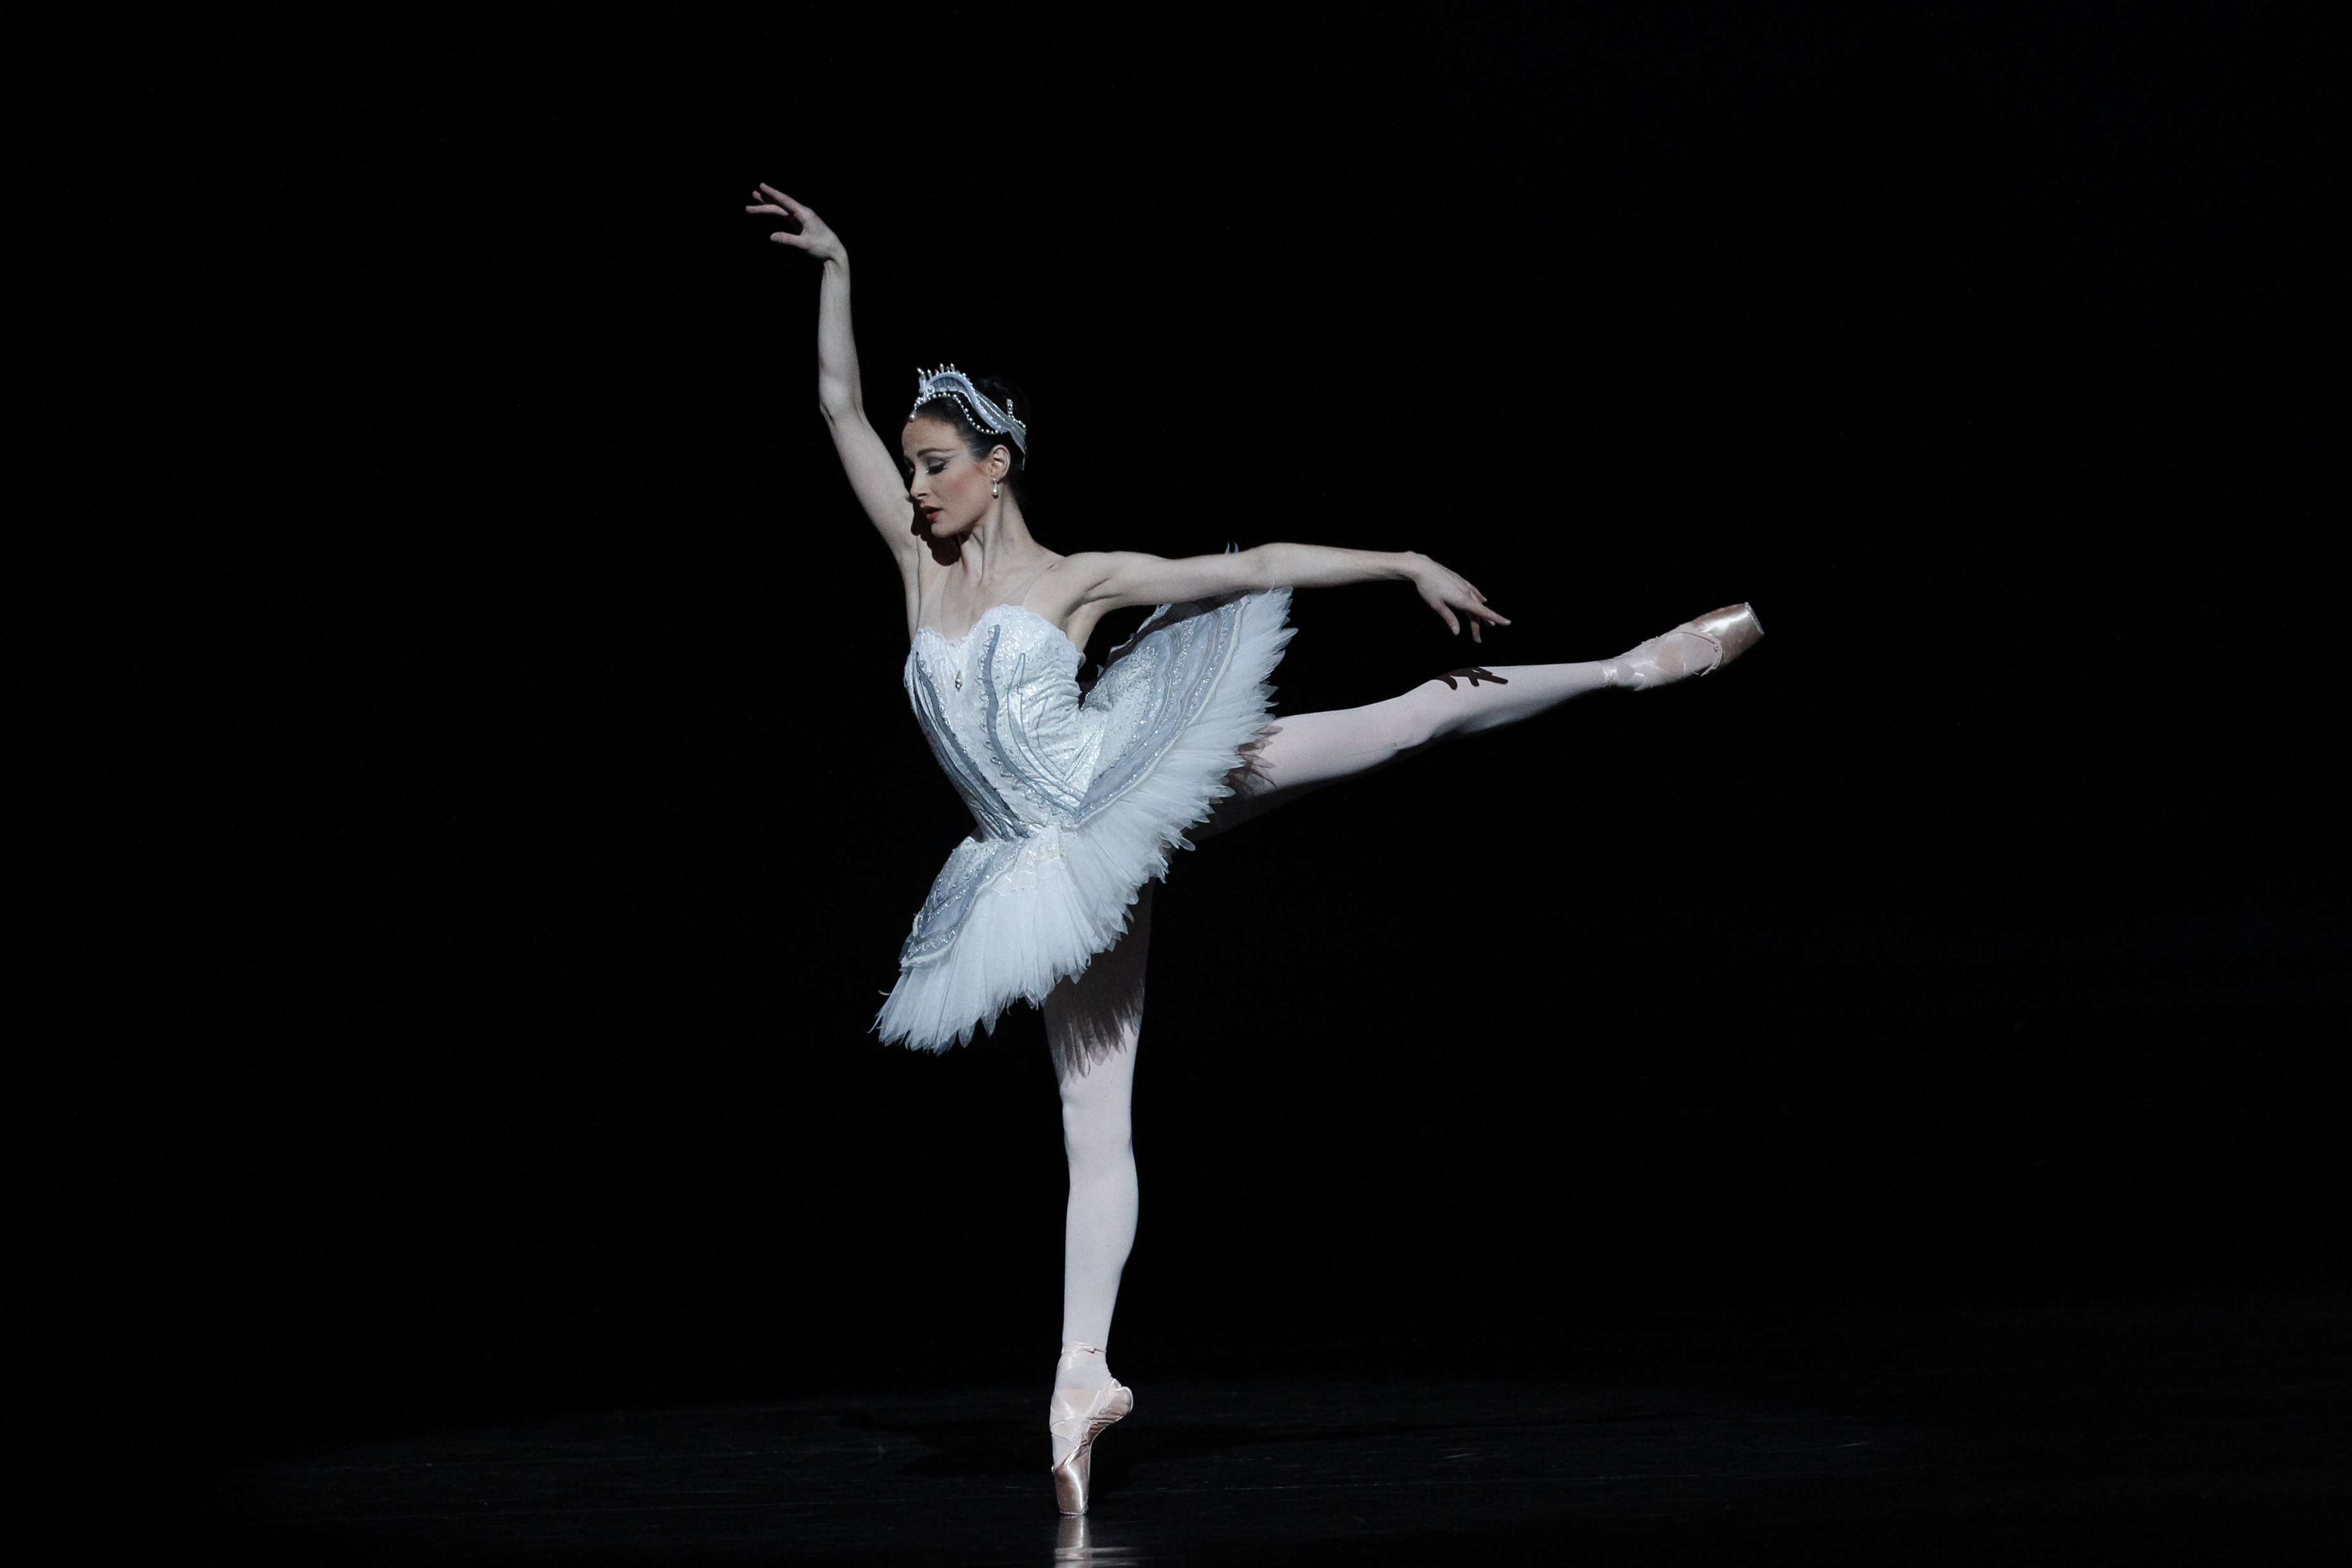 christian single men in swan lake Swan lake is famous for the 32 fouettés en tournant in act 3 these fouettés are danced at the end of the black swan pas de deux by the ballerina playing odile the pas was an afterthought of tchaikovsky's.